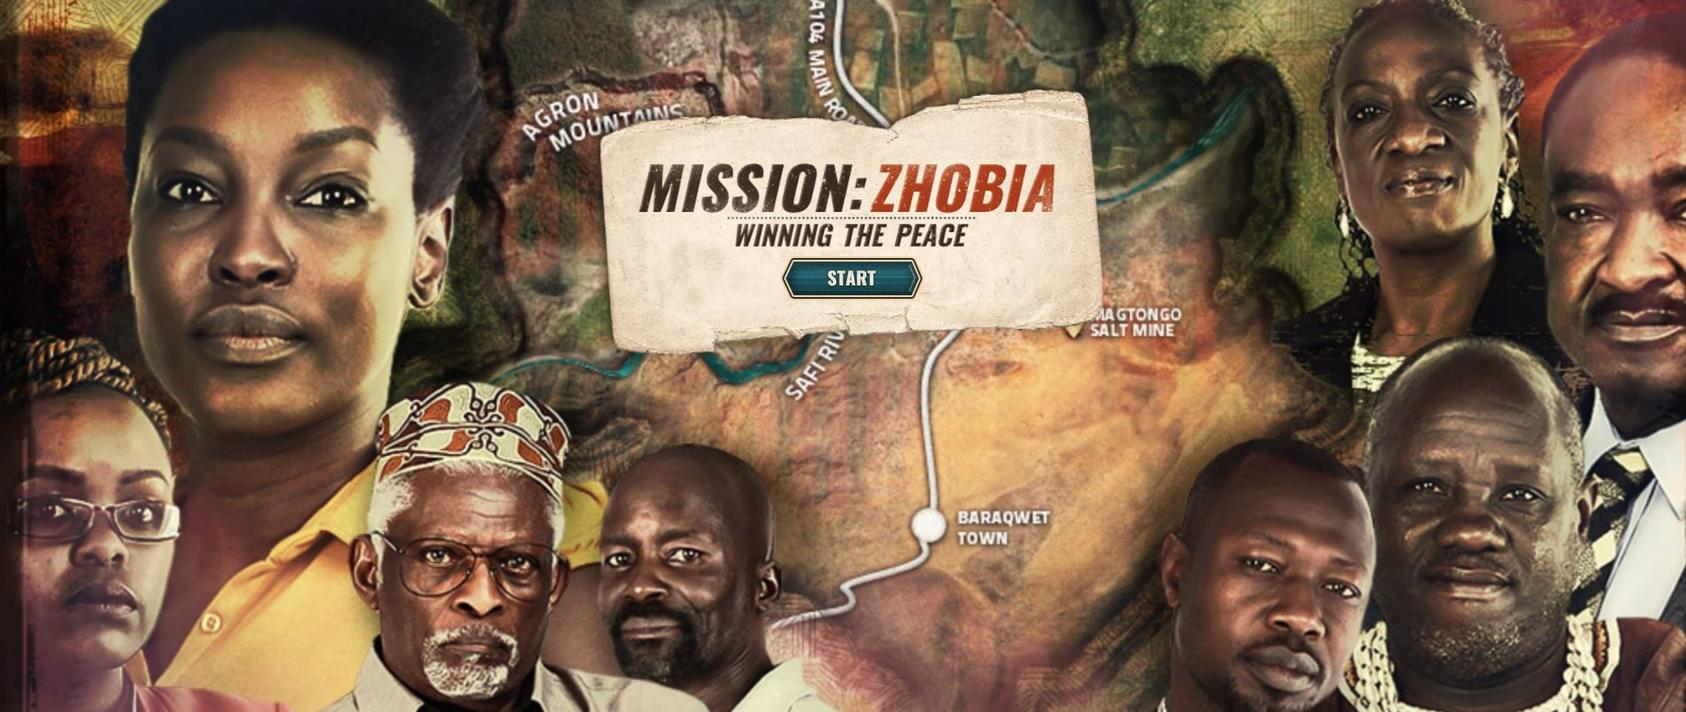 Welcome to Mission Zhobia